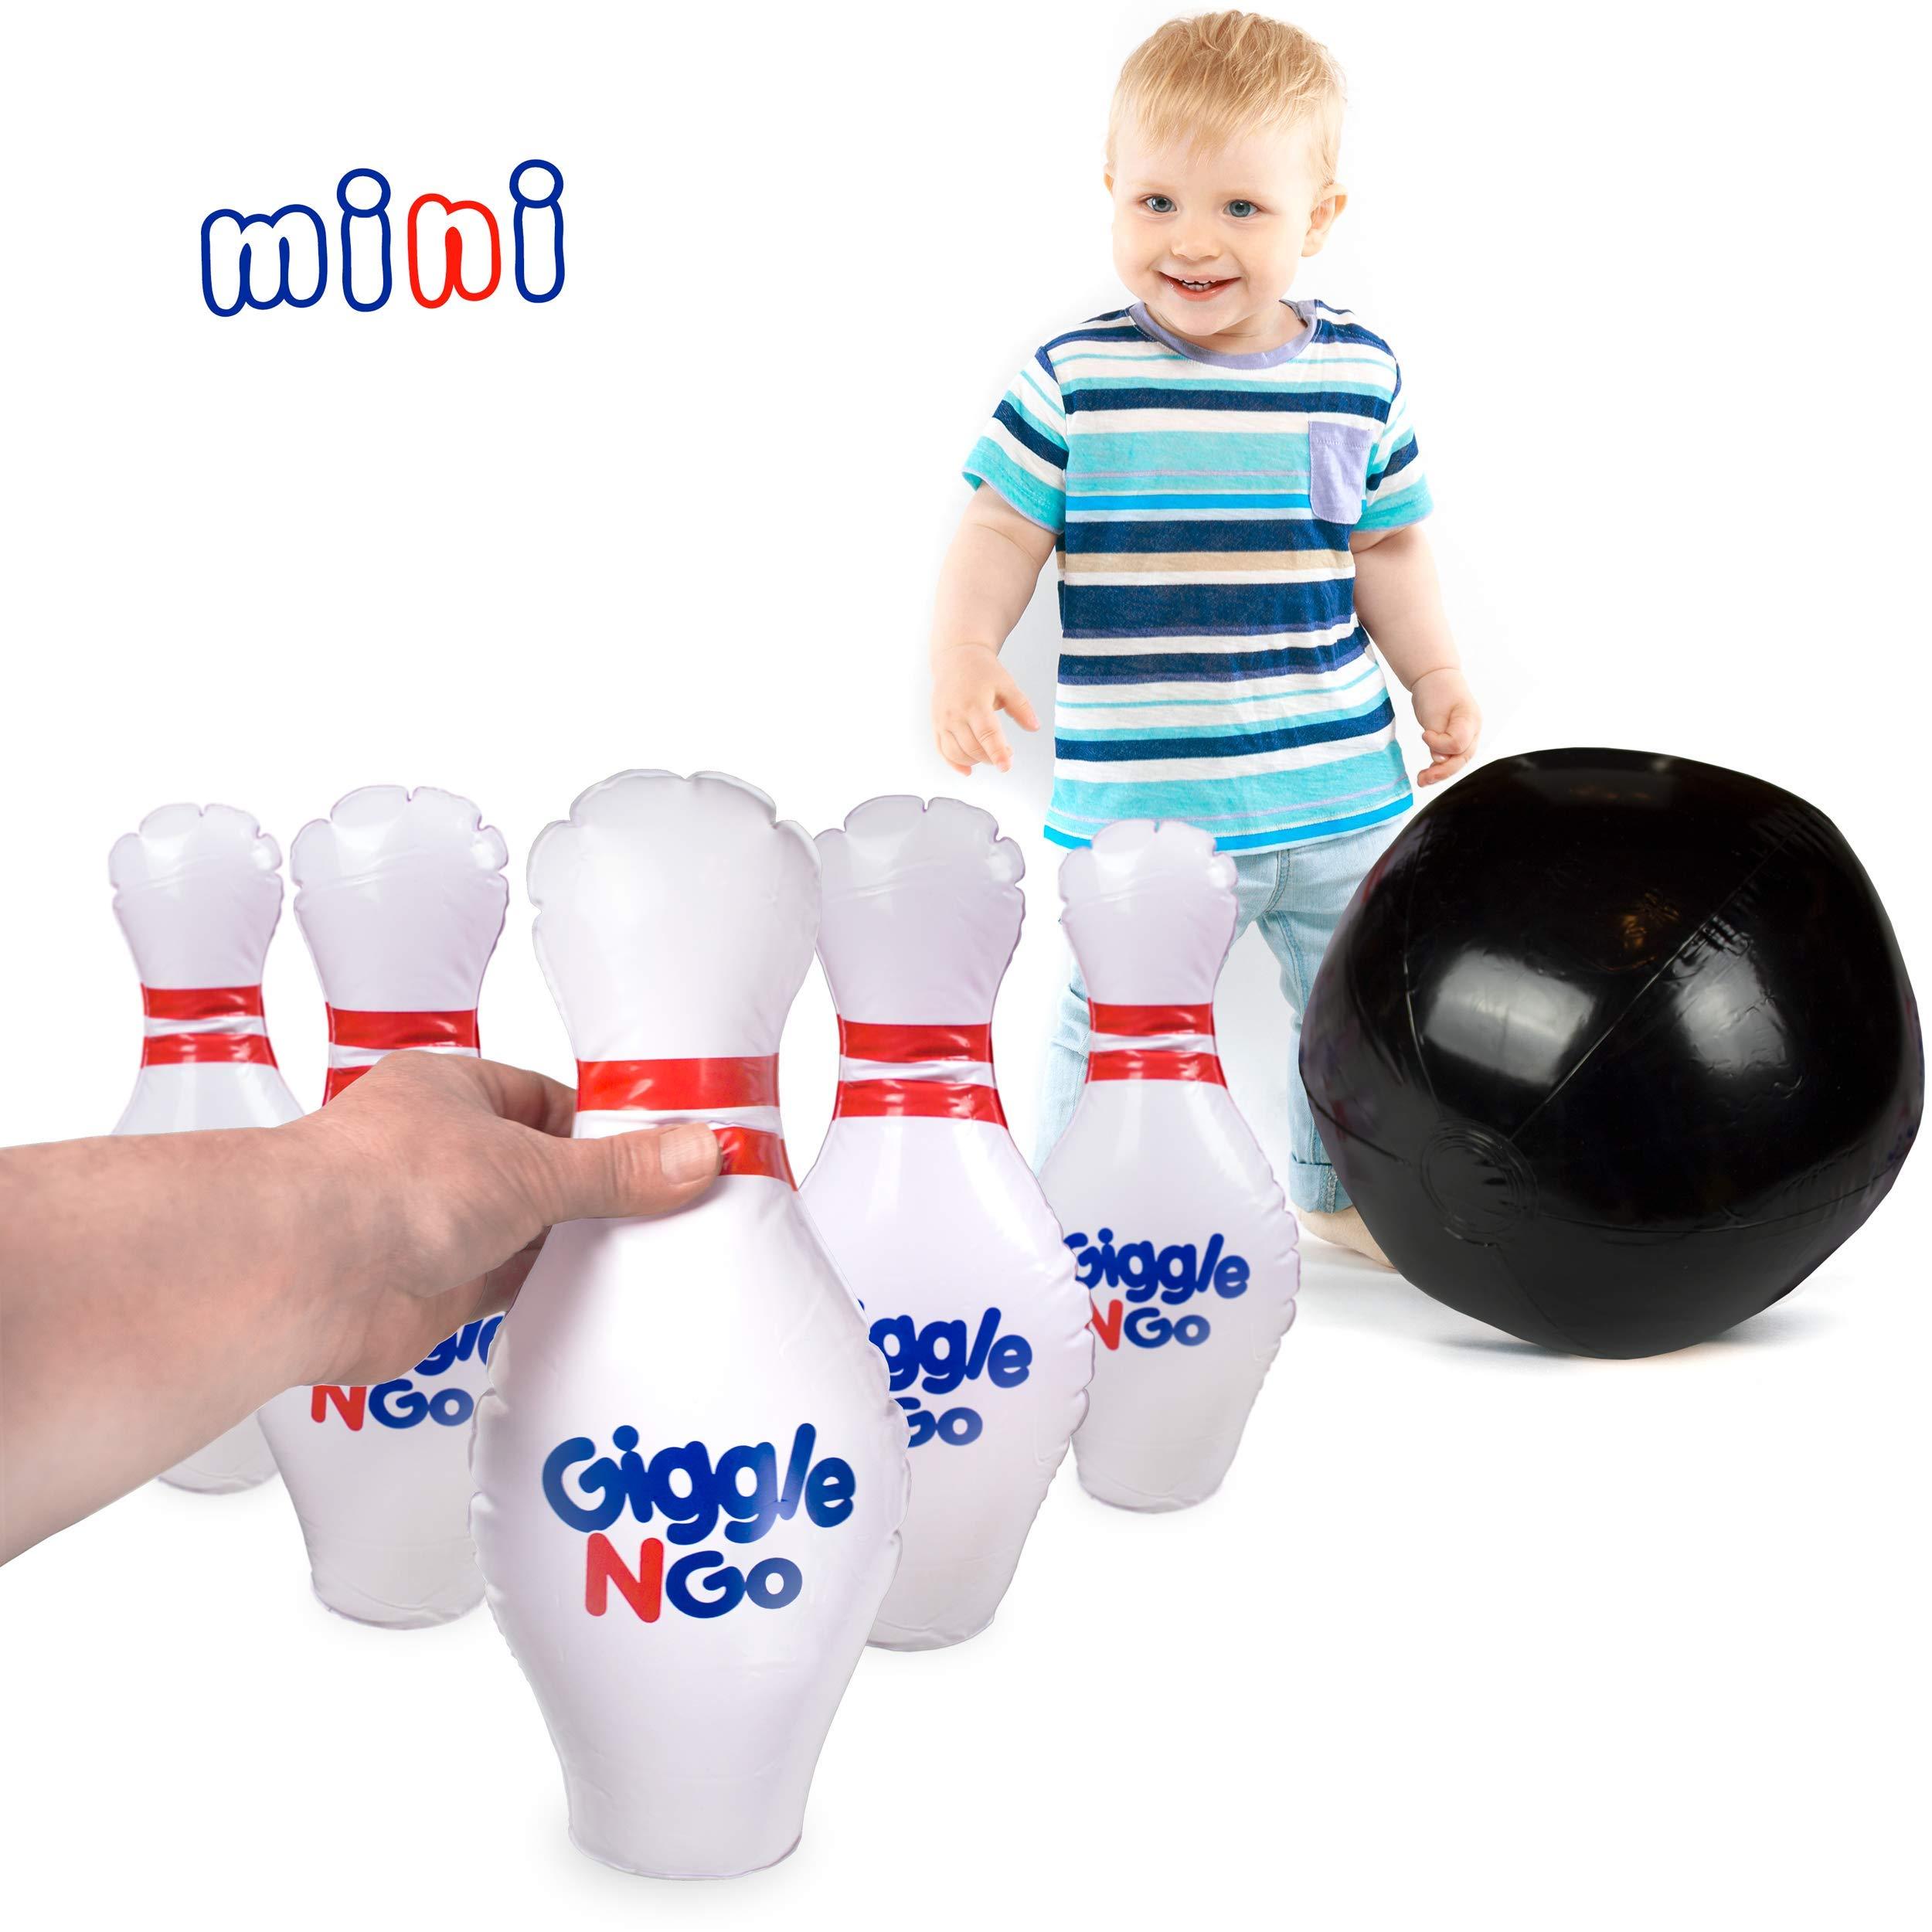 GIGGLE N GO Toddler Mini Bowling Set - Toddler Games Like Our Inflatable Bowling Game are a Safe Option as Toddler Toys for Boys and Girls Aged 2 and Above - Easy 2 Minute Set-Up by GIGGLE N GO